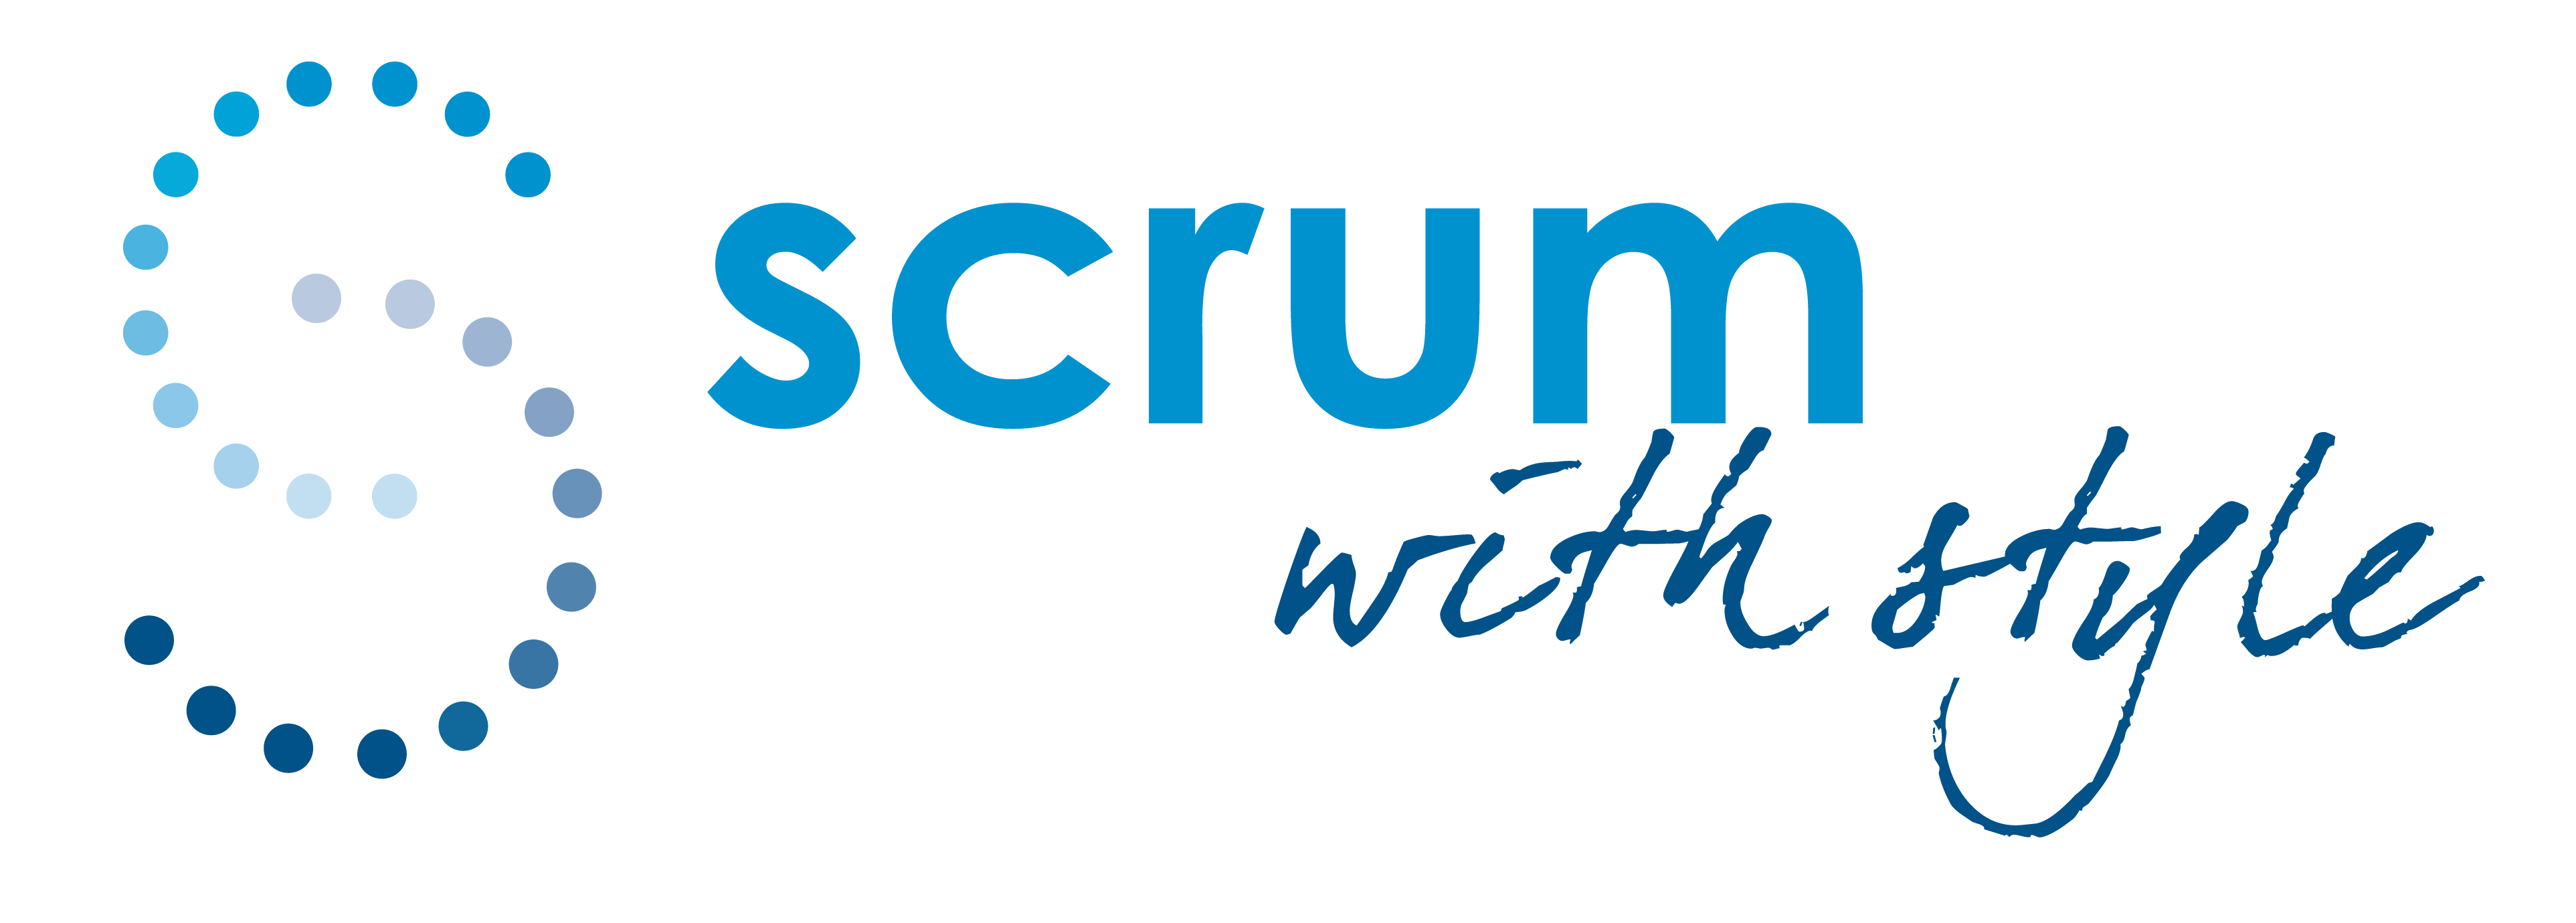 Scrum with Style logo